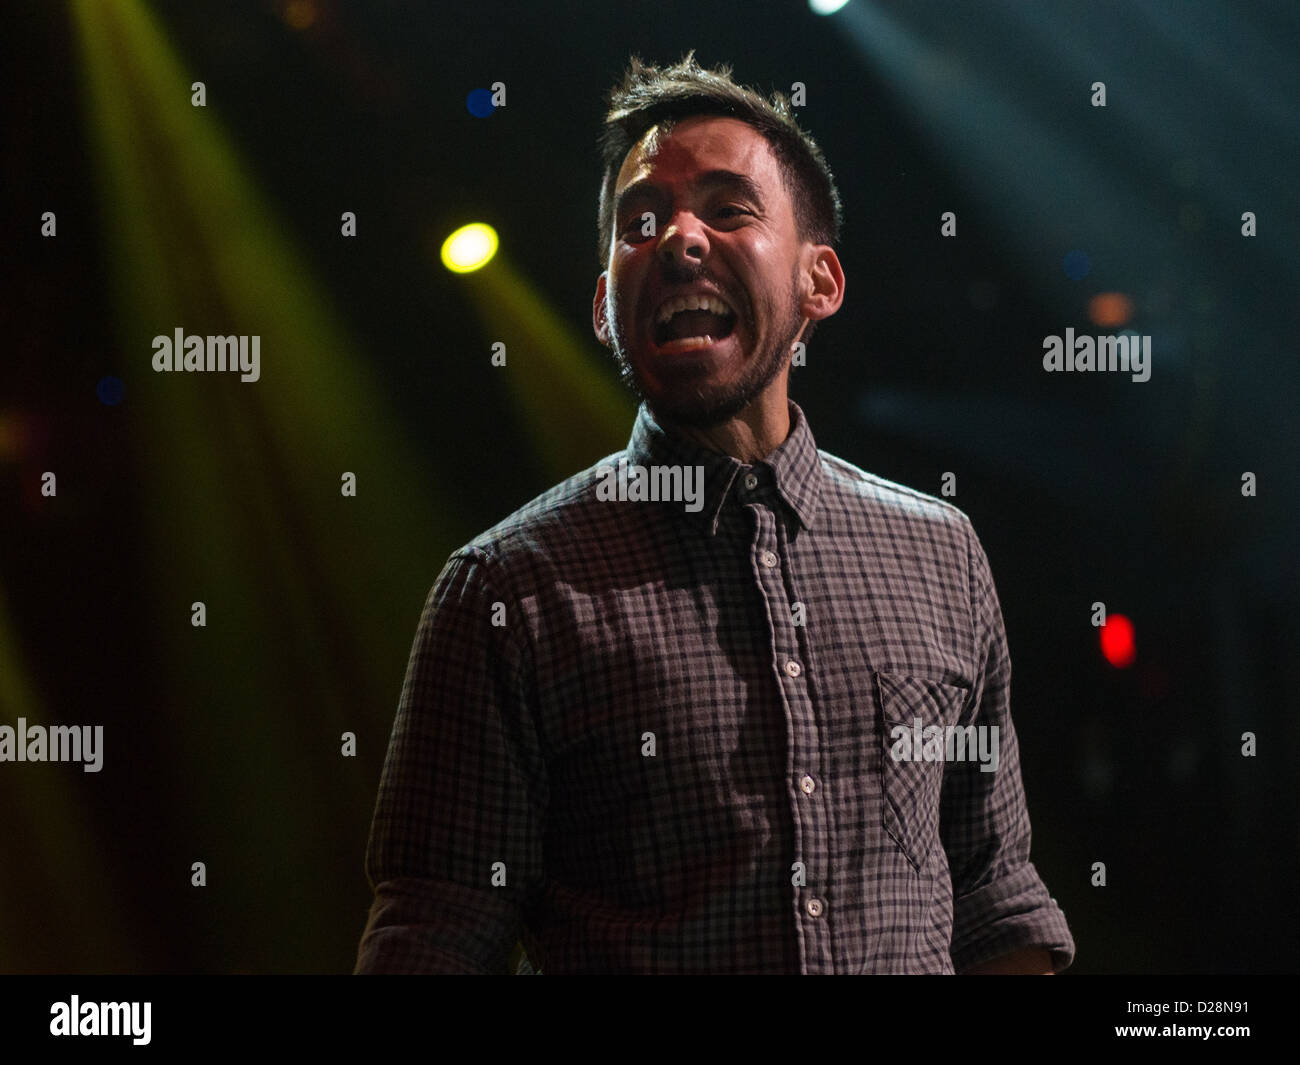 Linkin Park lead singer Mike Shinoda on stage at a concert in Moody Theater in Austin, Texas - Stock Image